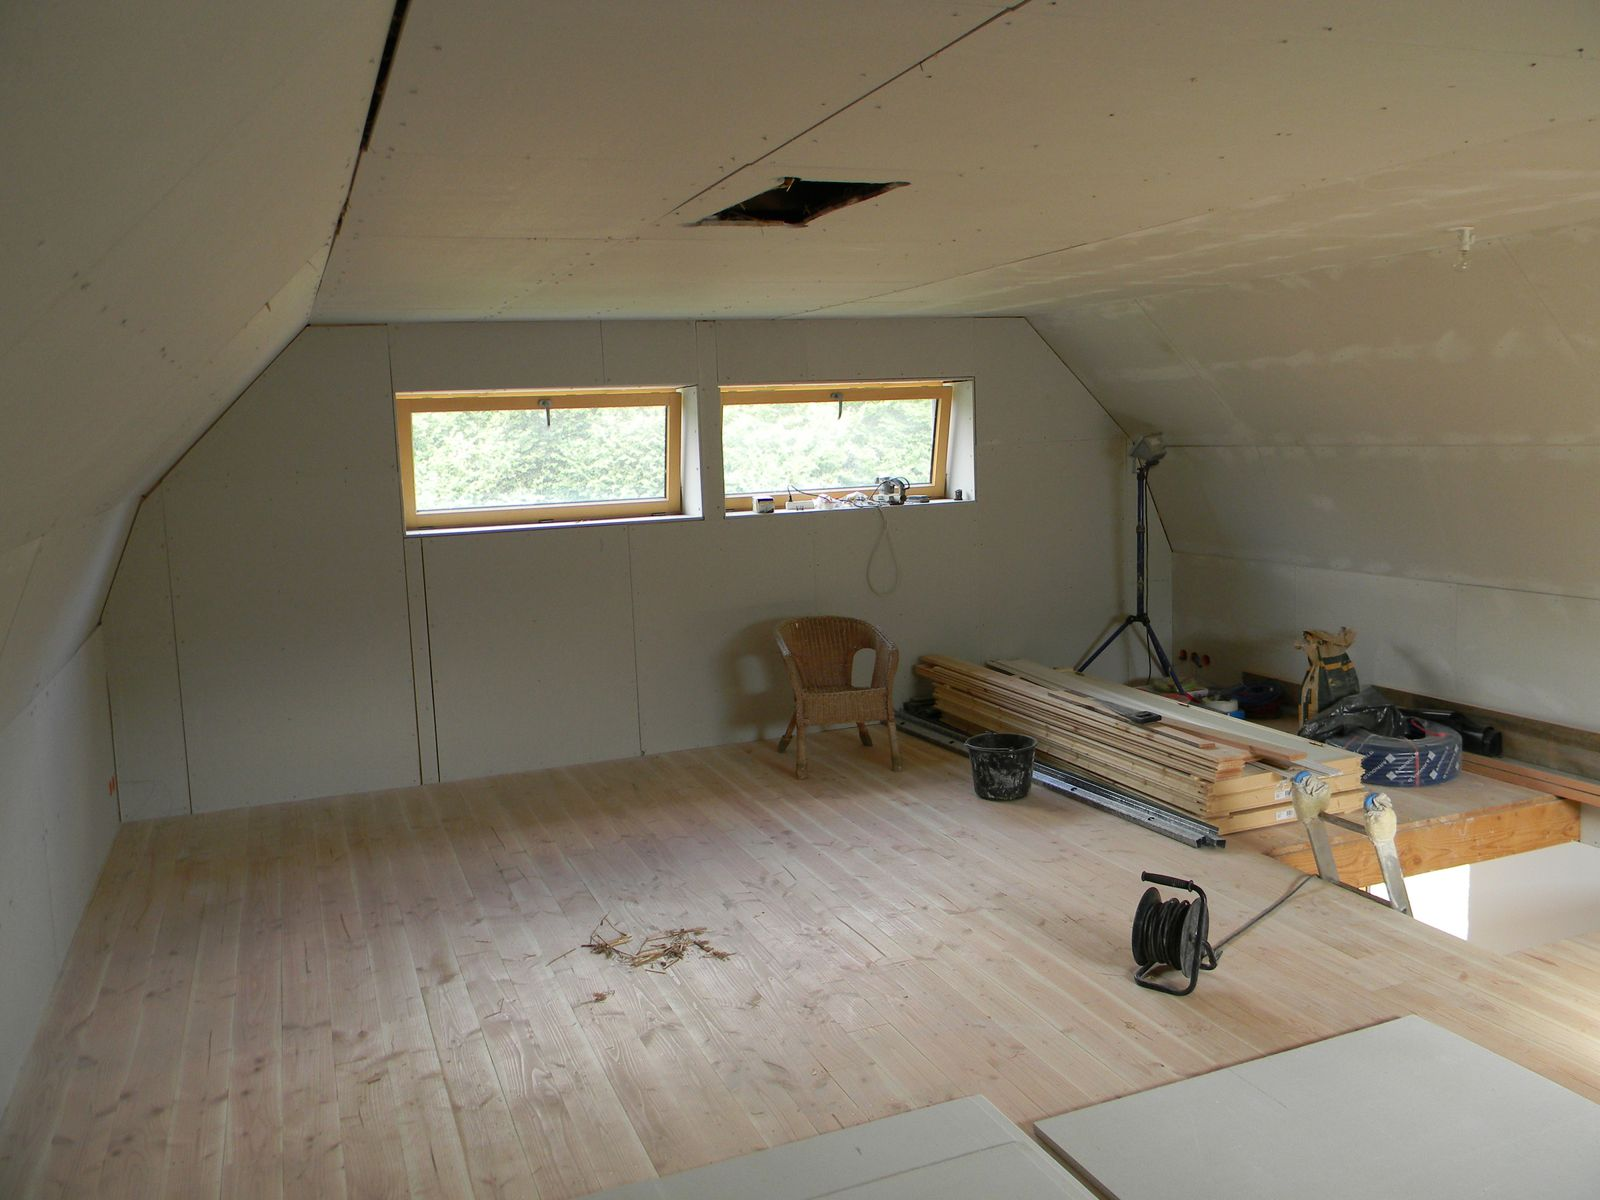 Album amenagement interieur auto construction d 39 une for Amenagement interieur d une maison